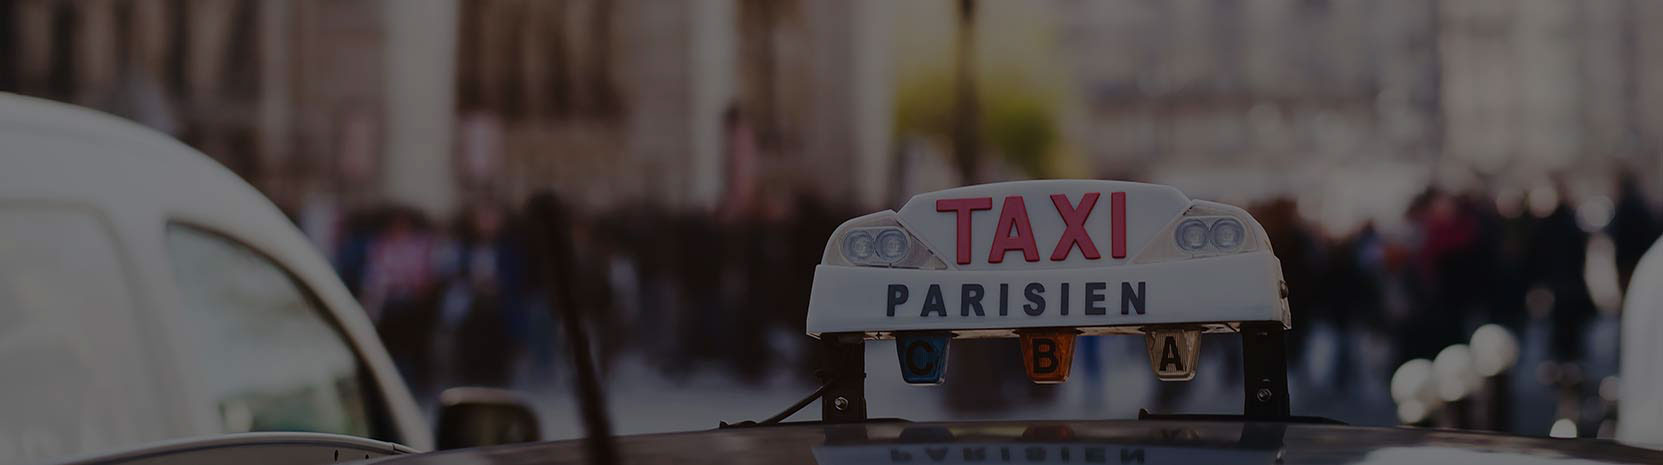 How to use taxis in Paris? – Lodgis Blog